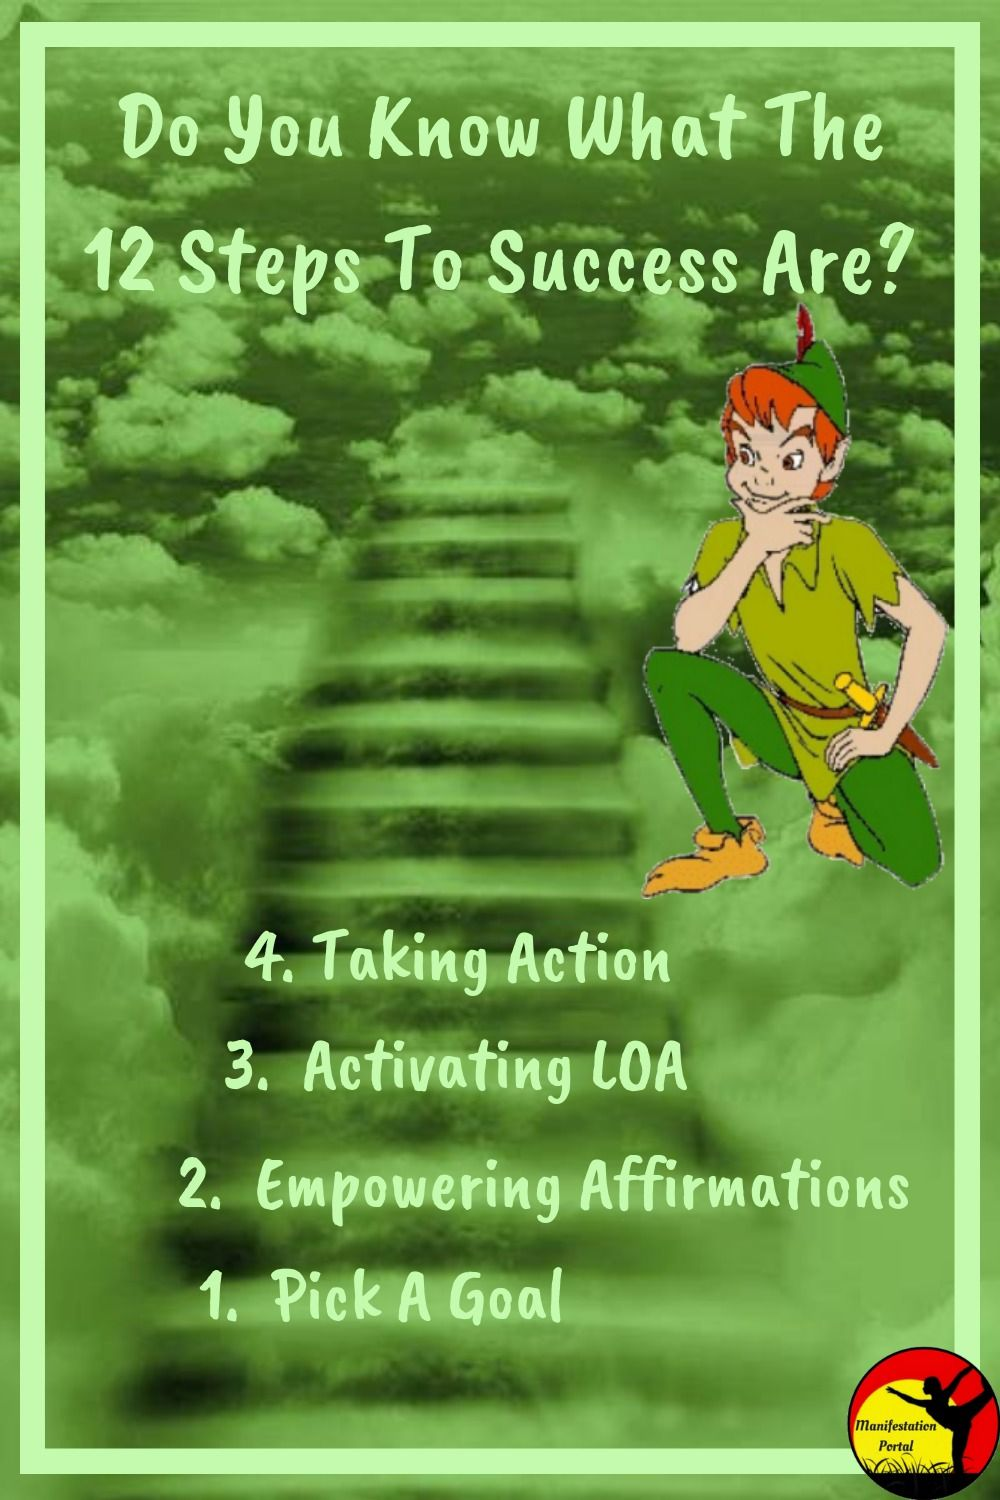 Peter Pan by the steps for success